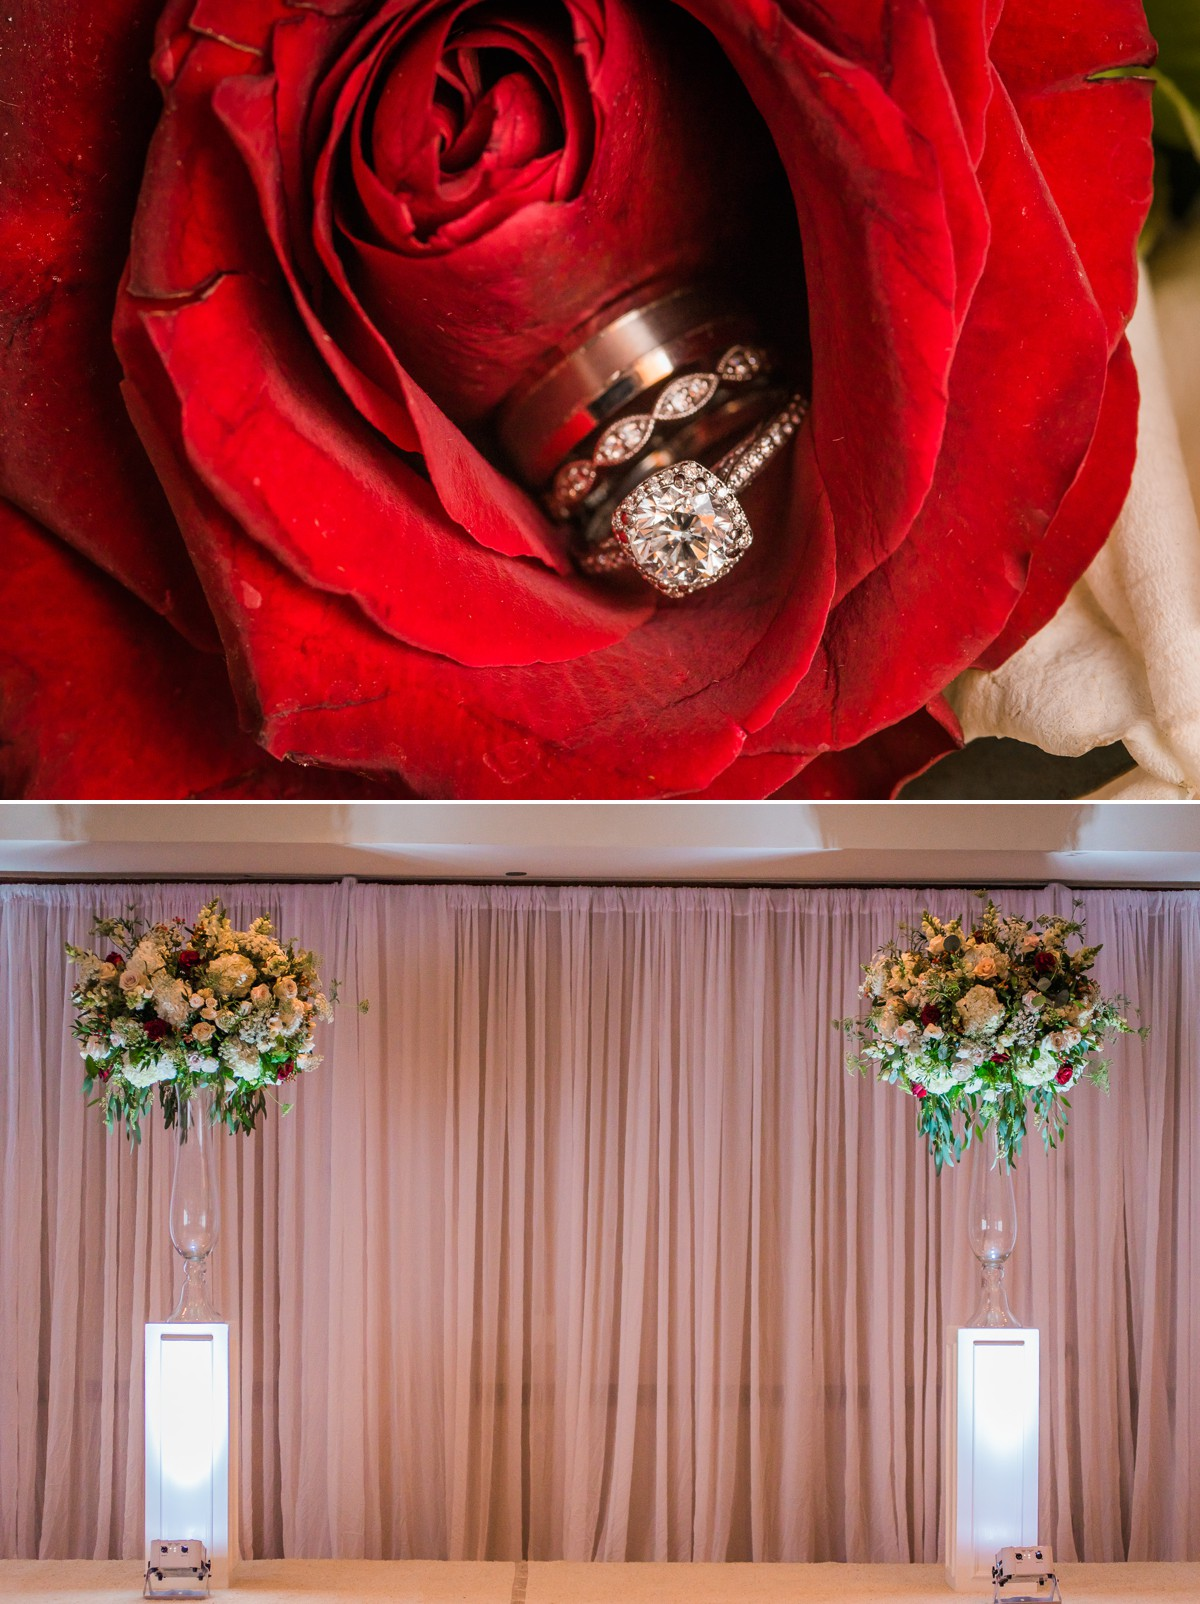 Manor House Wedding at The Houstonian Hotel Venue and Rings